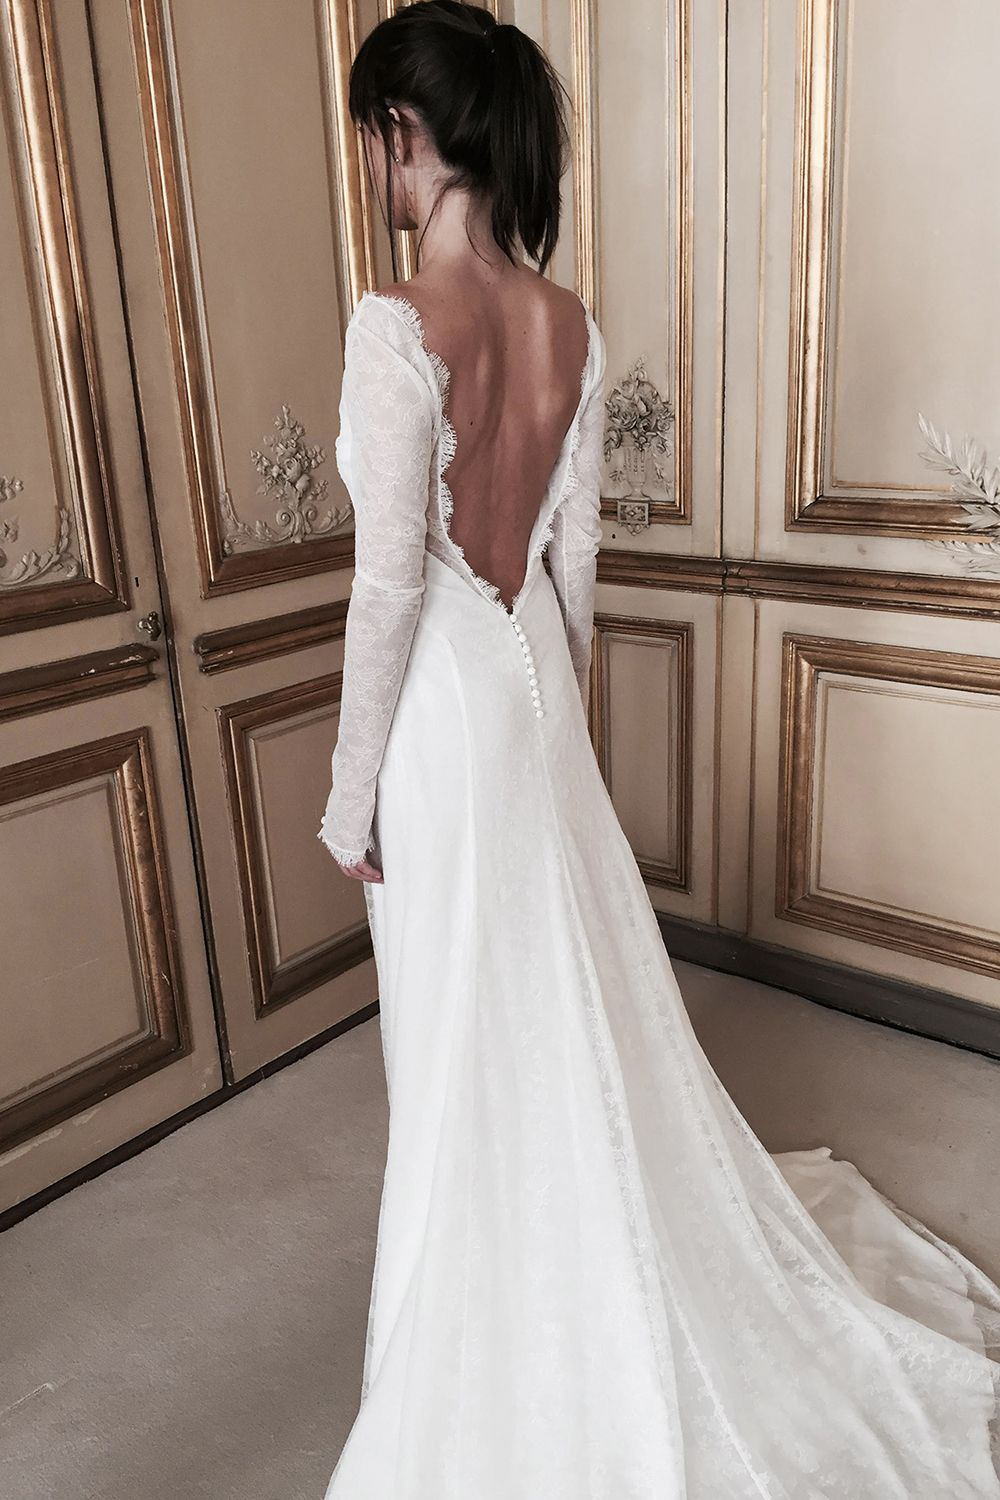 Dramatic wedding dresses   Wedding Dress Ideas For Pippa Middletonus Upcoming Walk Down the